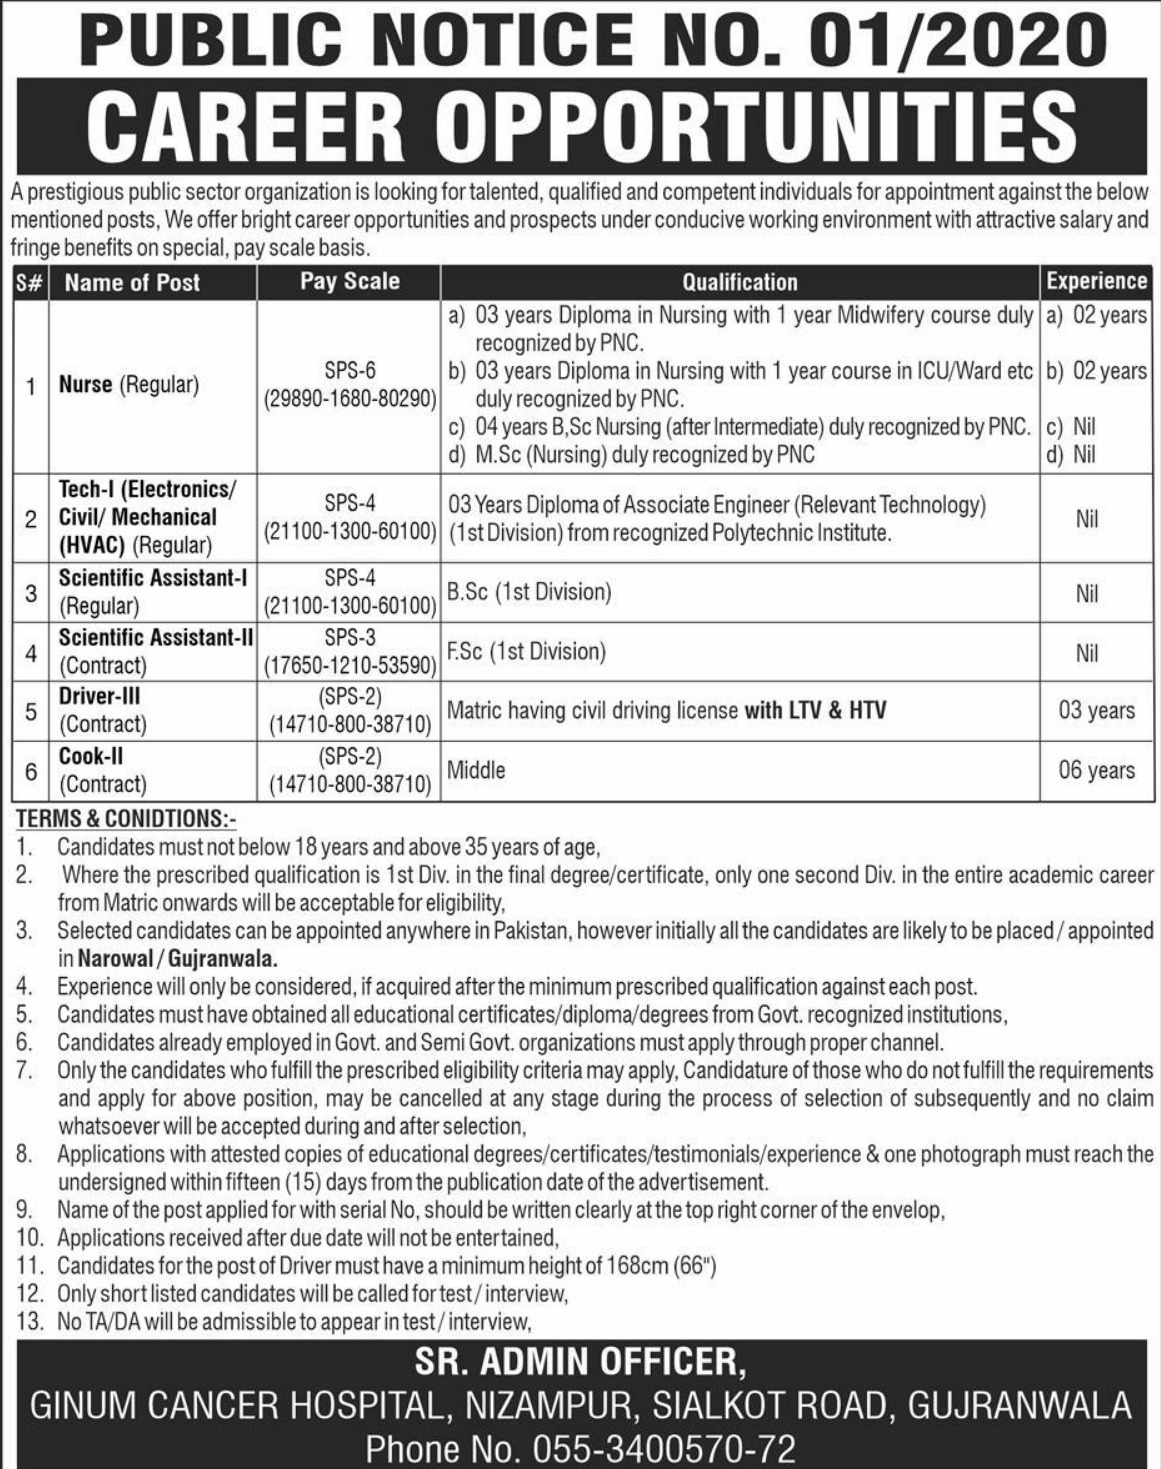 Ginum Cancer Hospital Gujranwala Jobs 2020